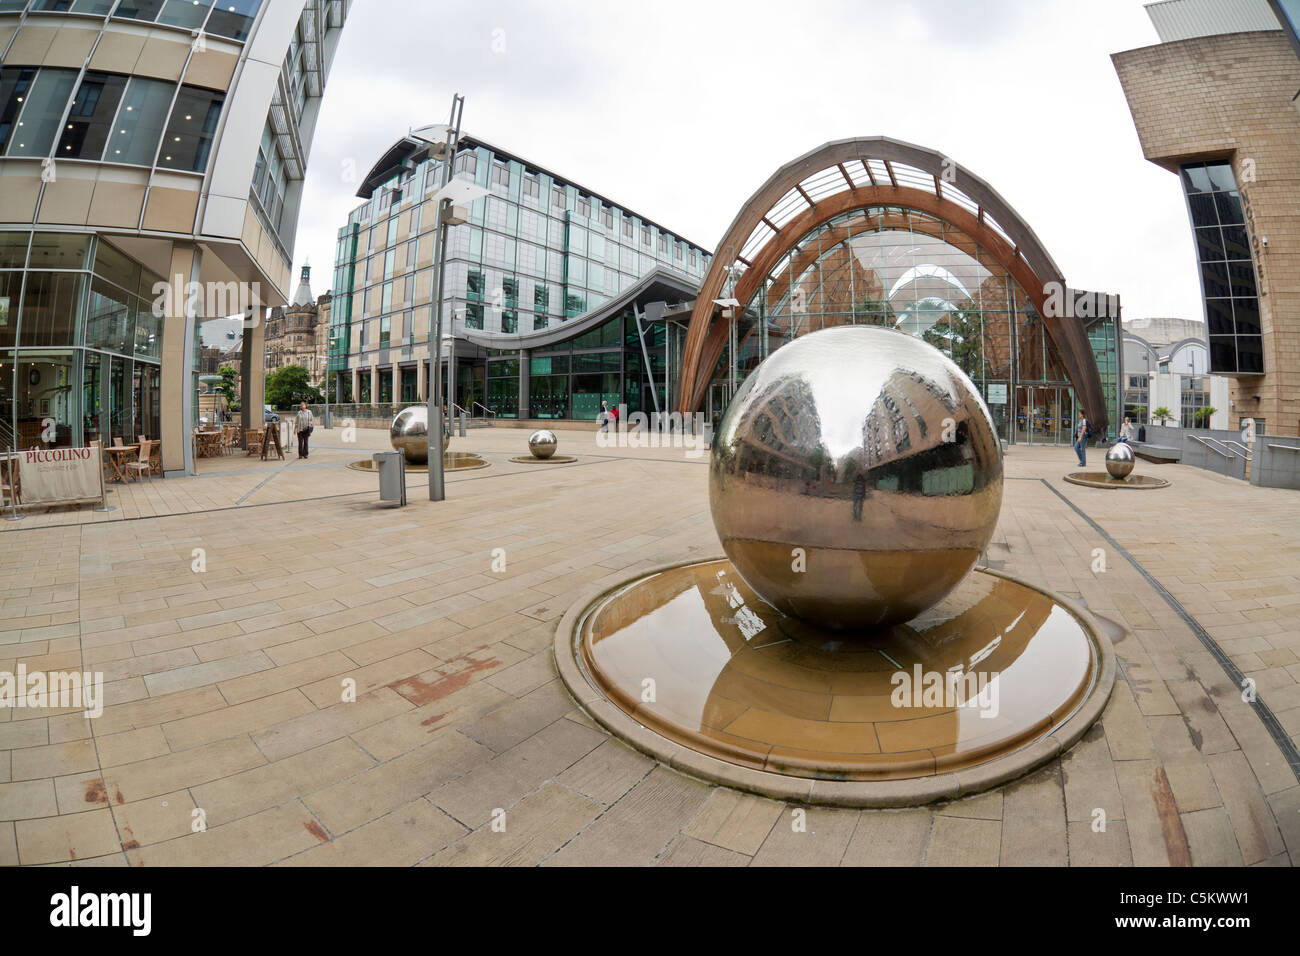 St Paul 39 S Place Sheffield City Centre With The Winter Gardens Stock Photo Royalty Free Image